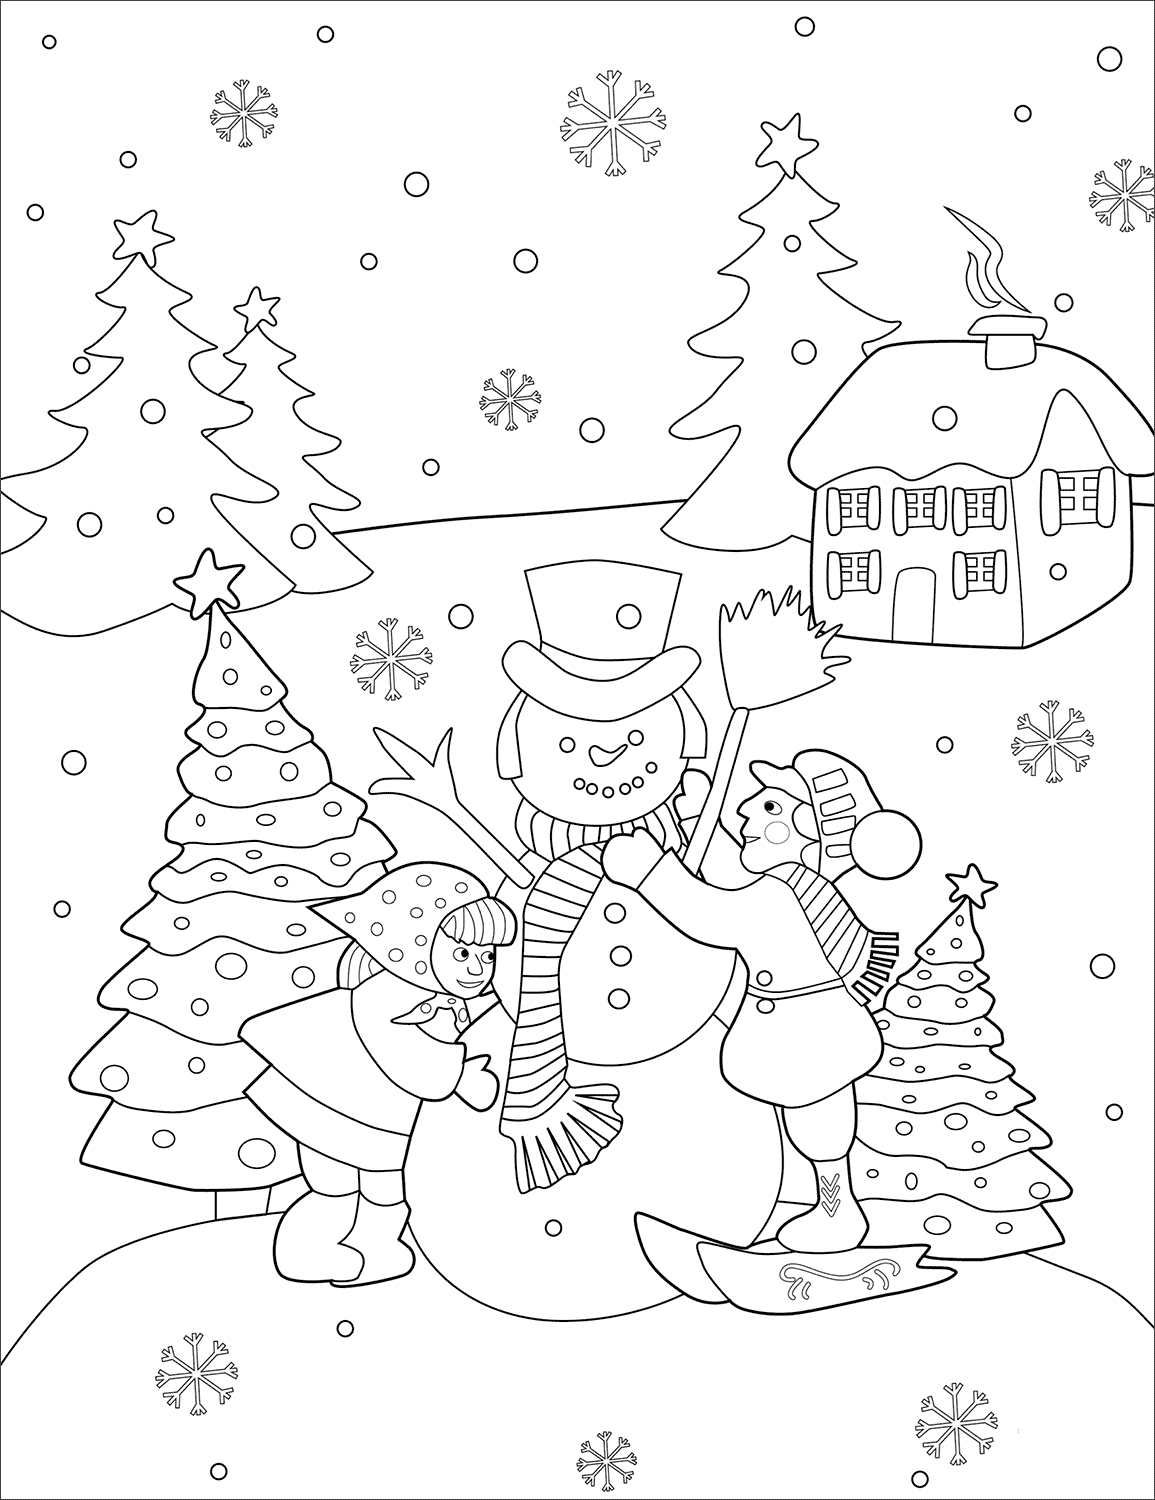 20 Free Snow Coloring Pages Printable